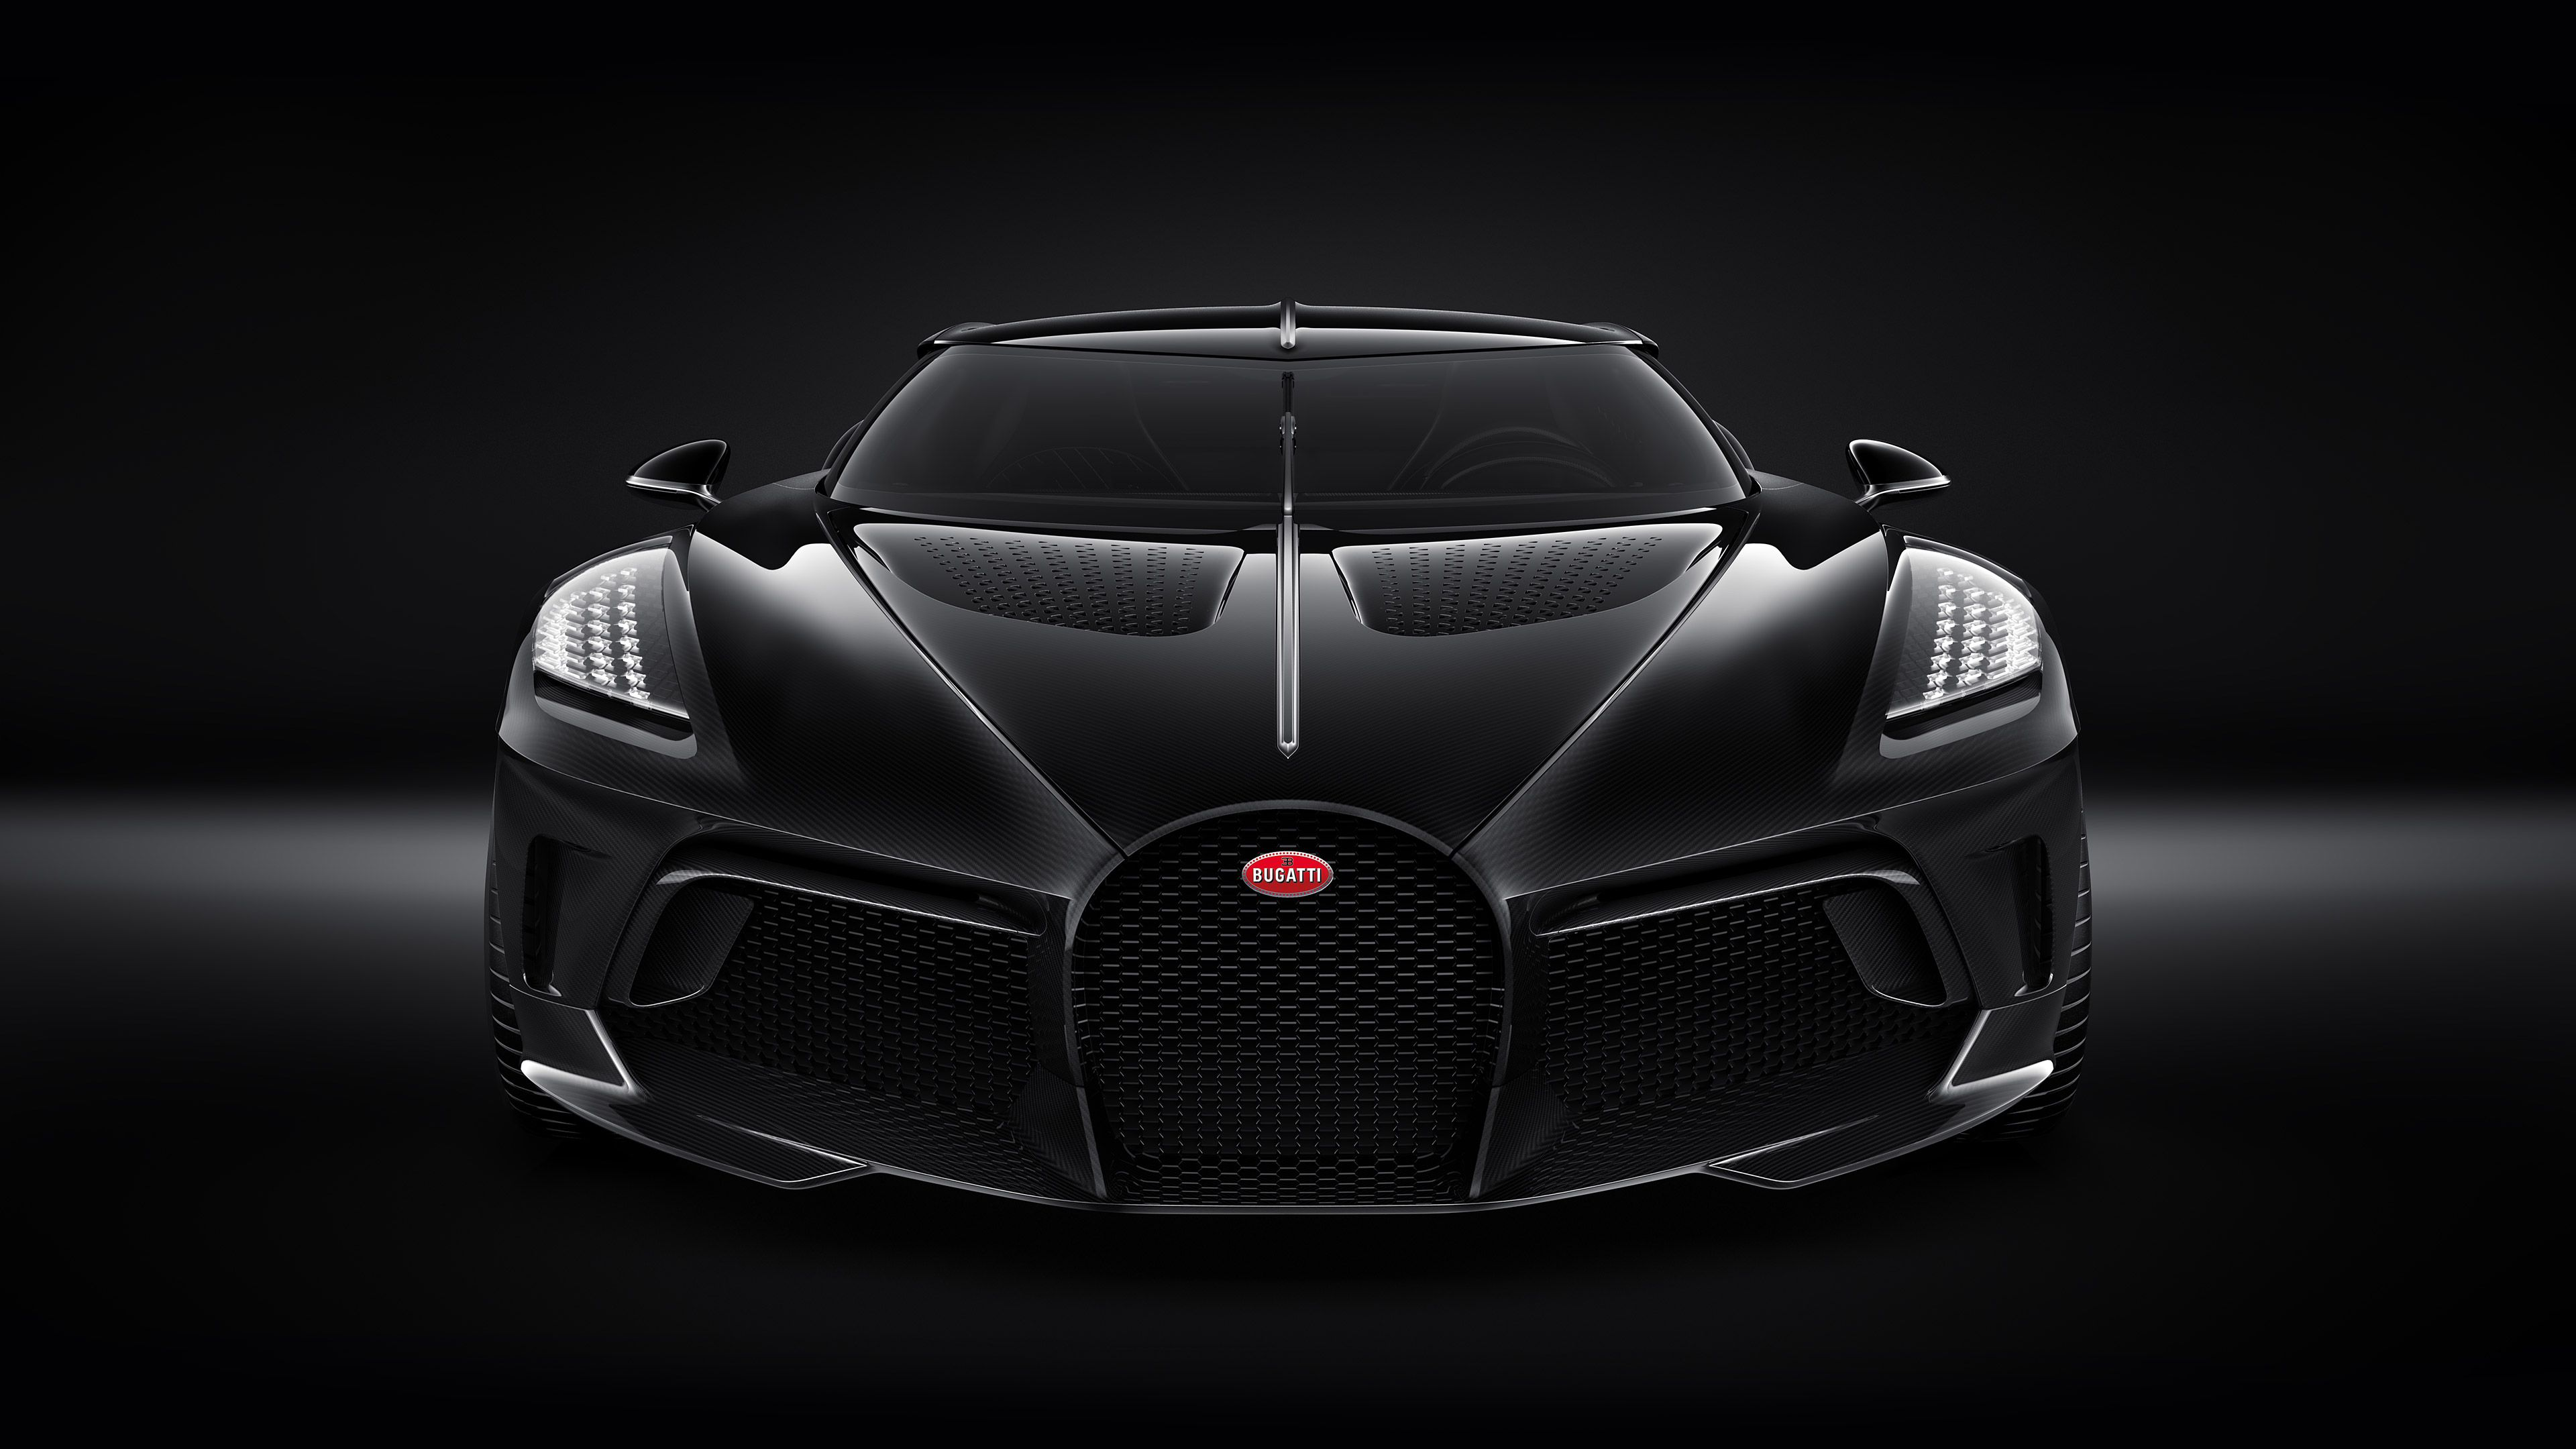 Bugatti La Voiture Noire 2019 Front 4k Bugatti Wallpapers 4k Bugatti Voiture Wallpaper 2019 Bugatti La Wallpaper 4k Black Car Bugatti Cars Most Expensive Car